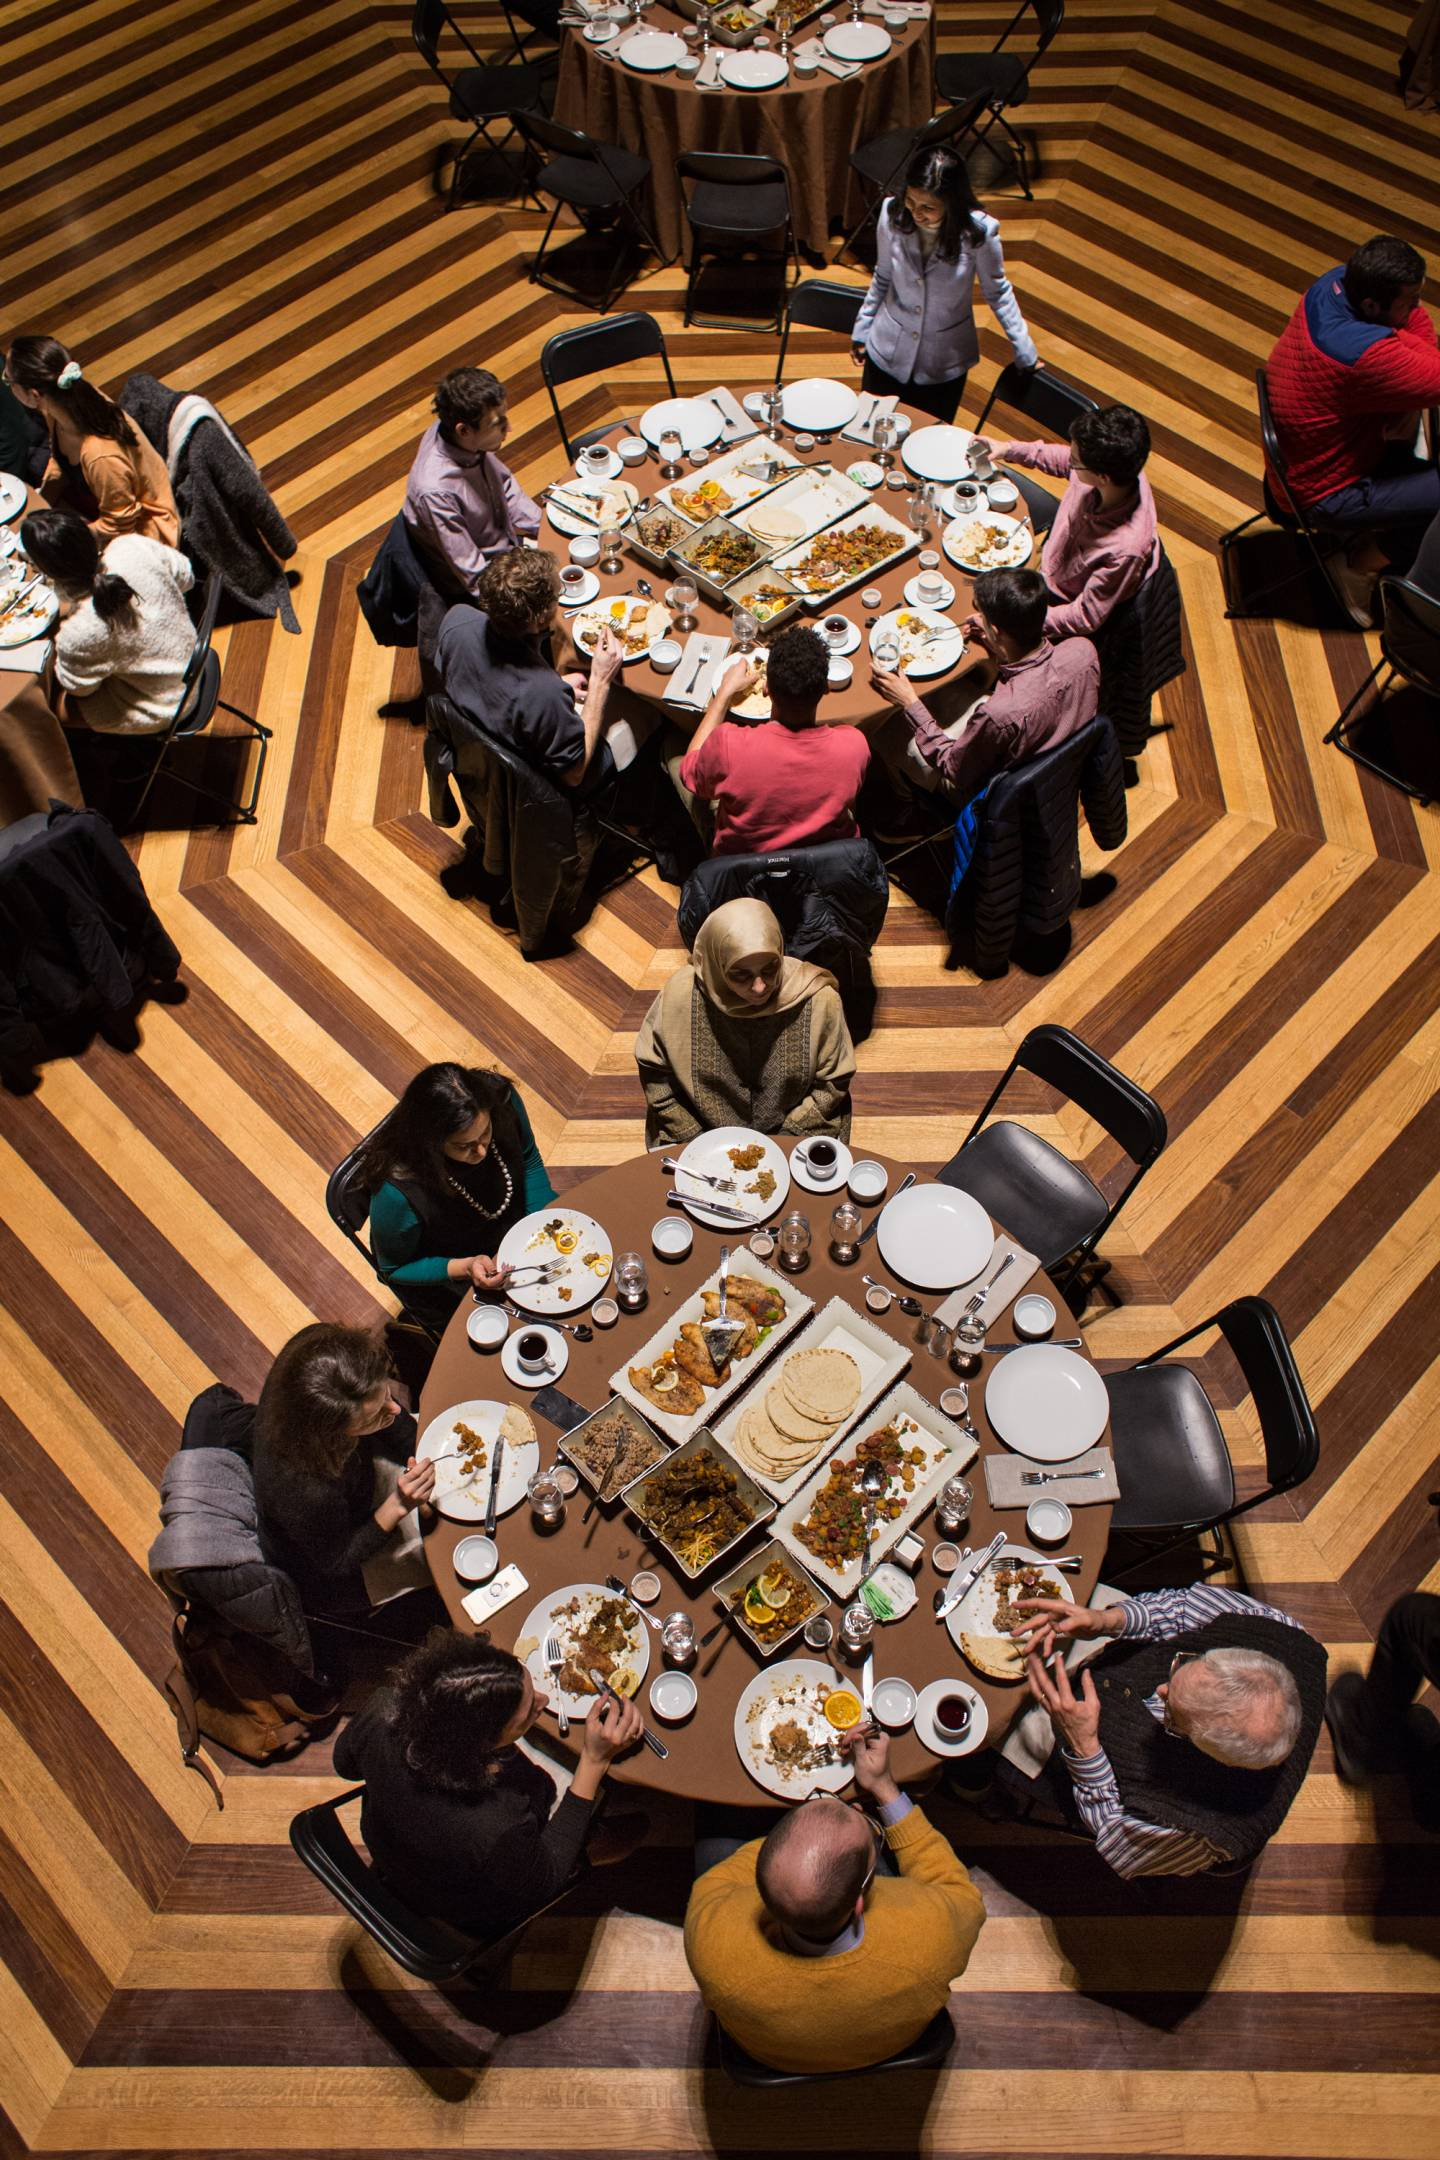 Students sit at tables during Medieval Cairo banquet